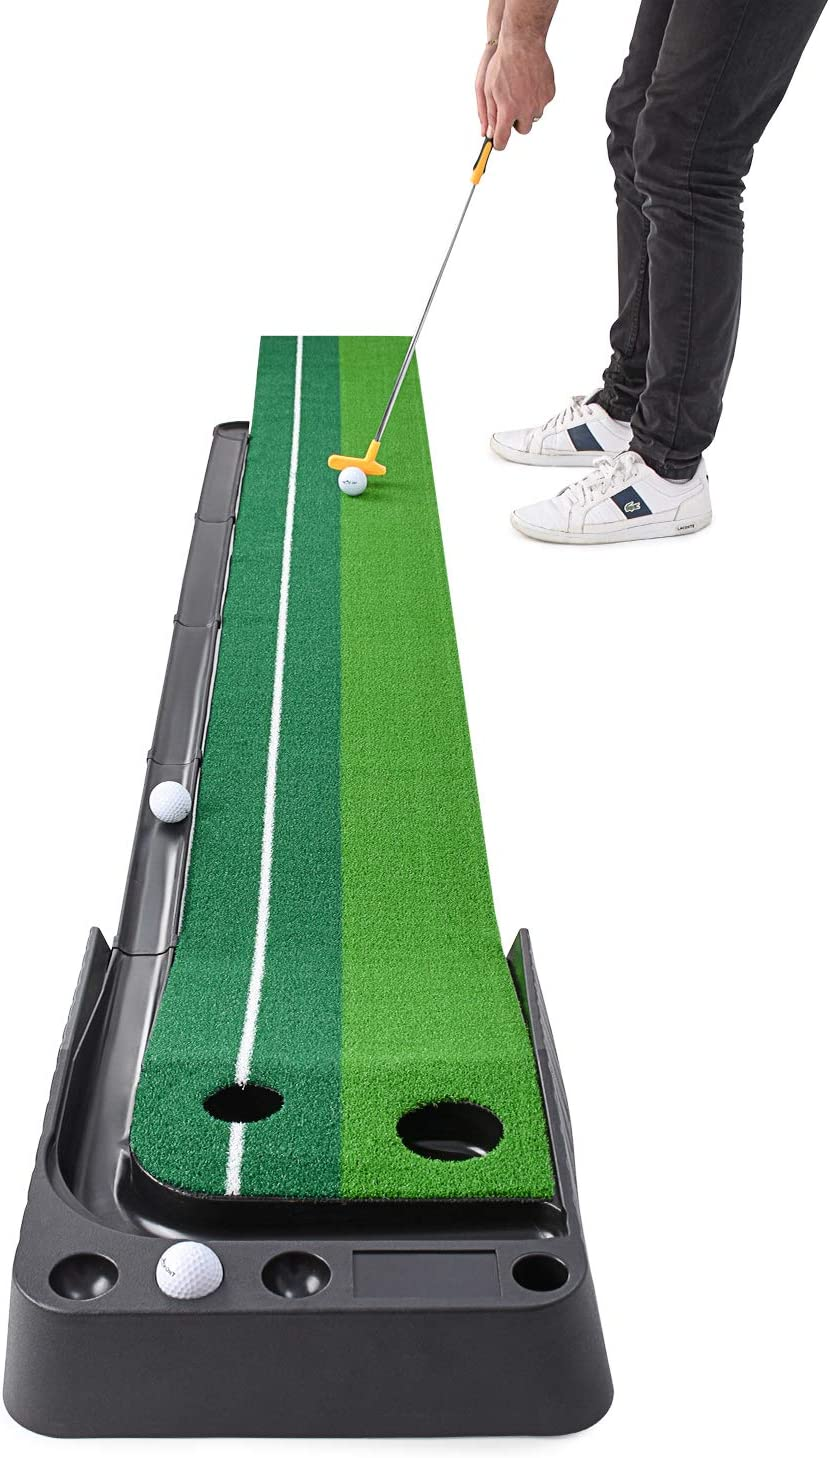 Abco Tech Indoor Golf Putting Green – Portable Mat with Auto Ball Return Function – Mini Golf Practice Training Aid, Game and Gift for Home, Office, Outdoor Use – 3 Bonus Balls